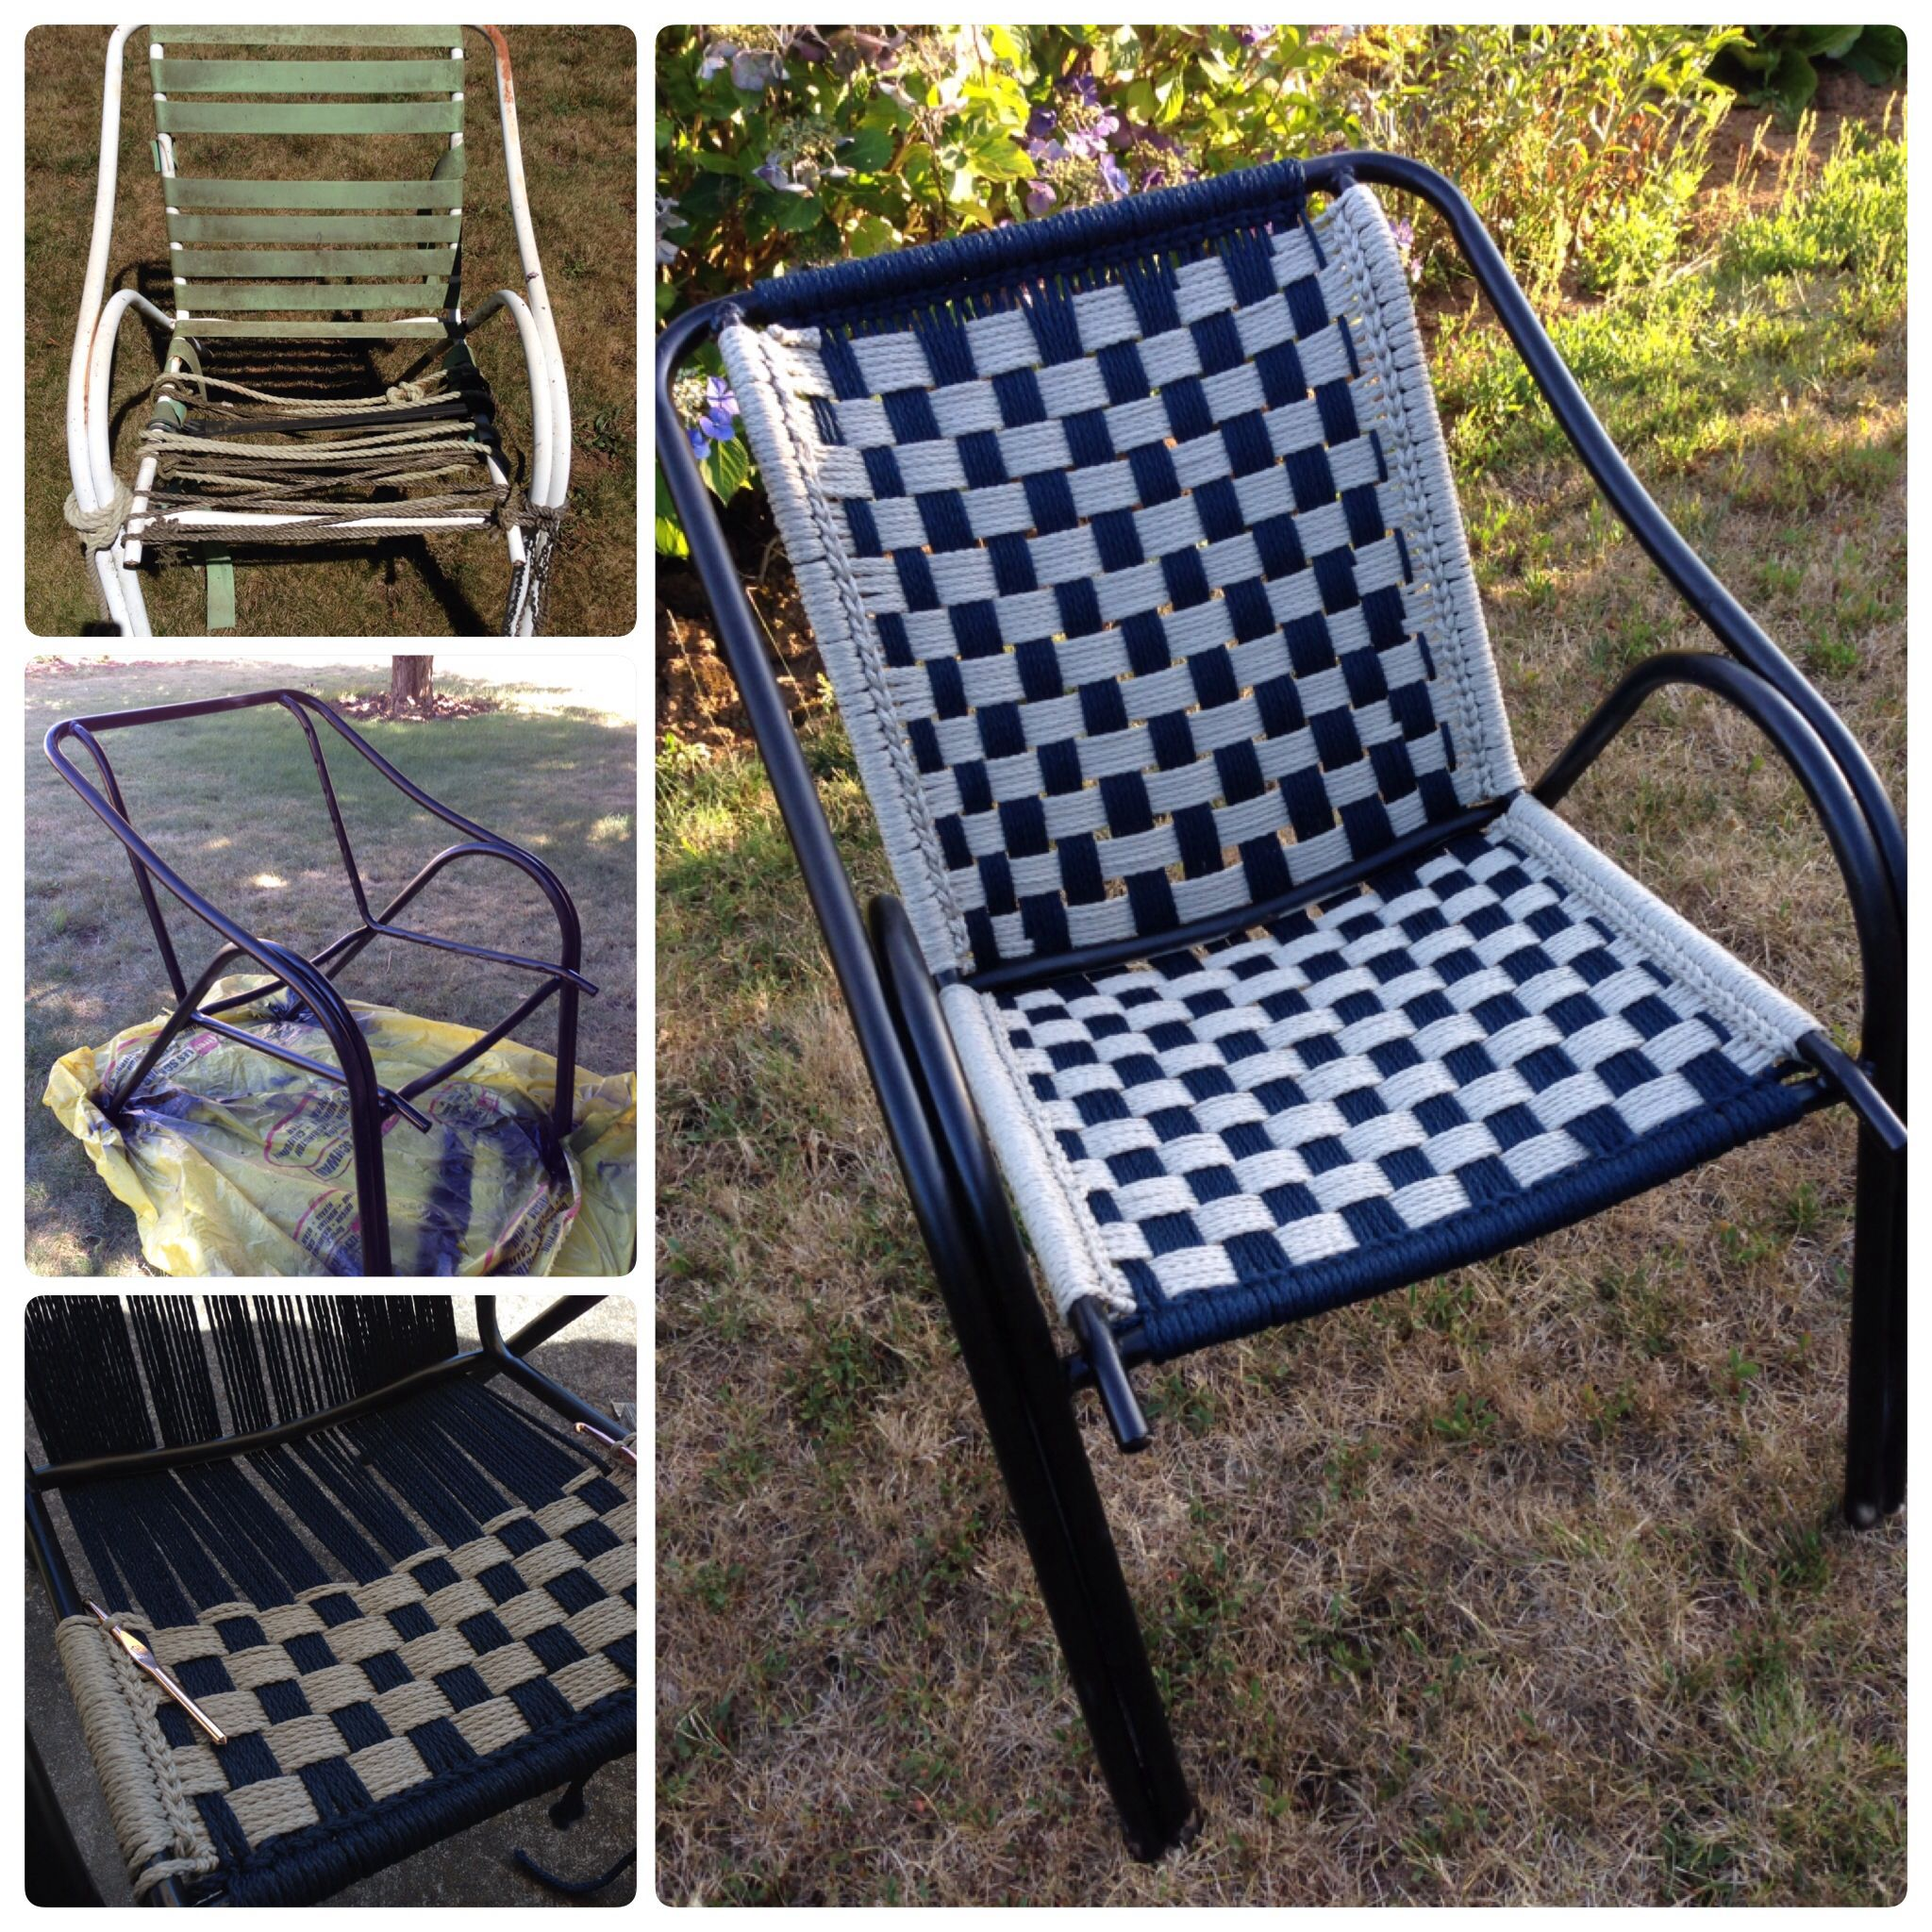 macrame lawn chair patterns macrame lawn chair pinteres 6285